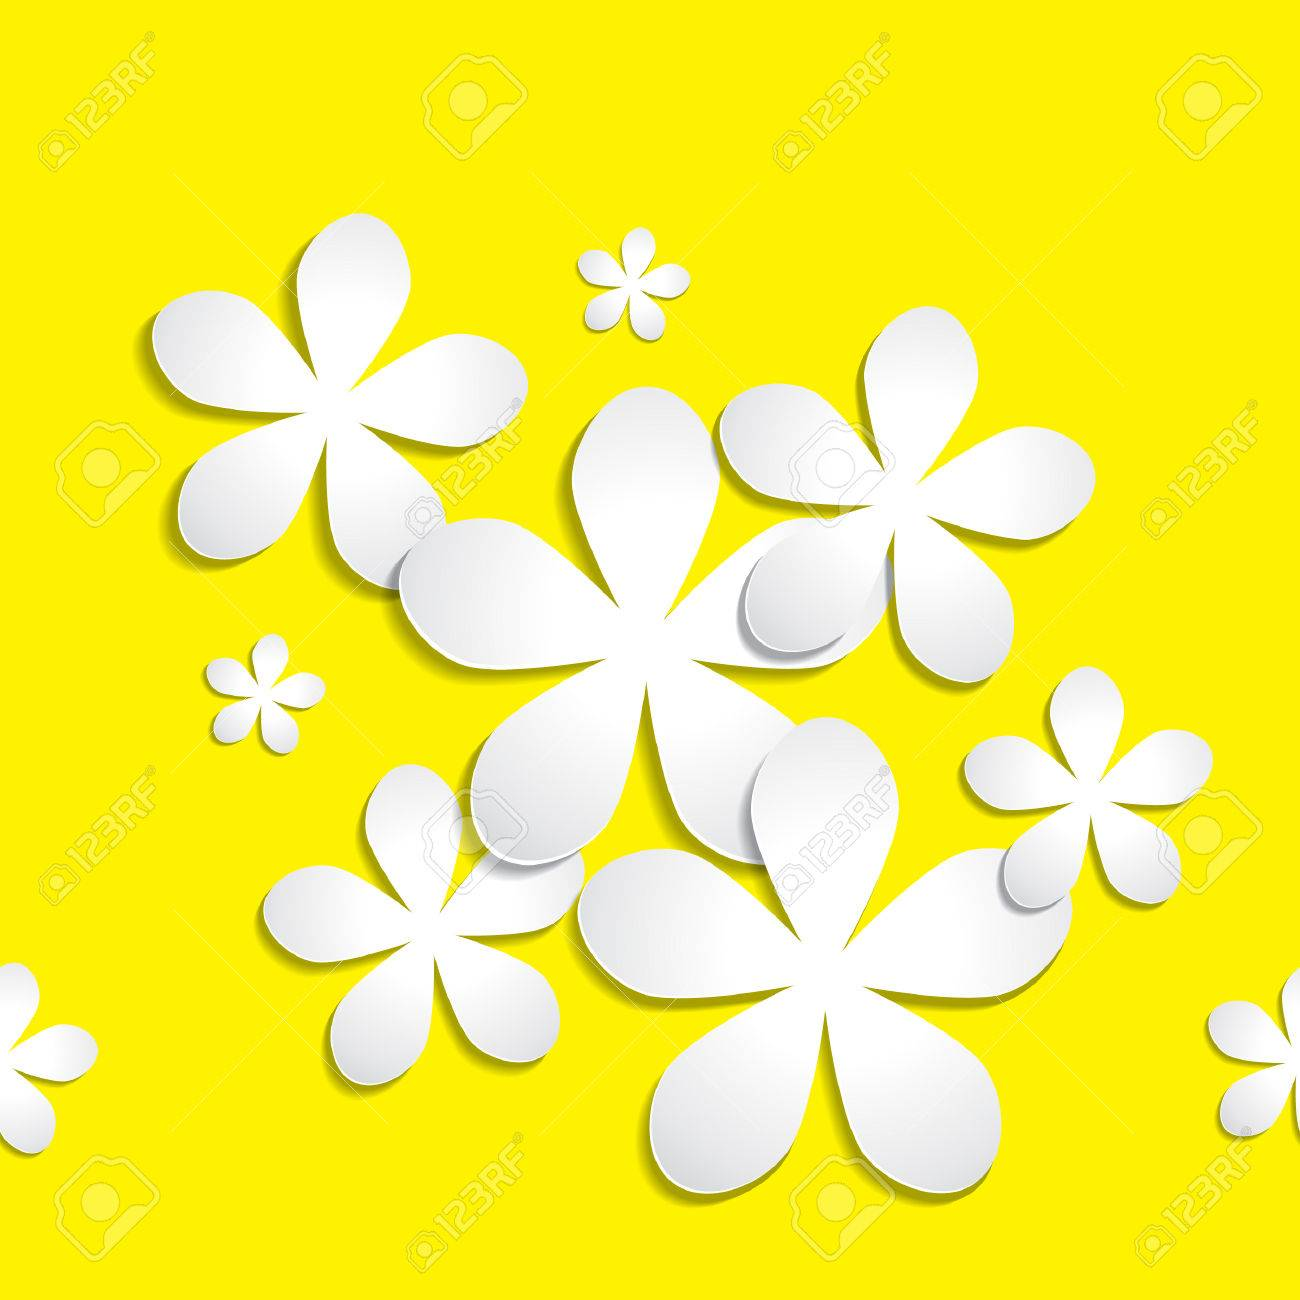 Abstract 3d Paper Flower Vector Pattern Background Available